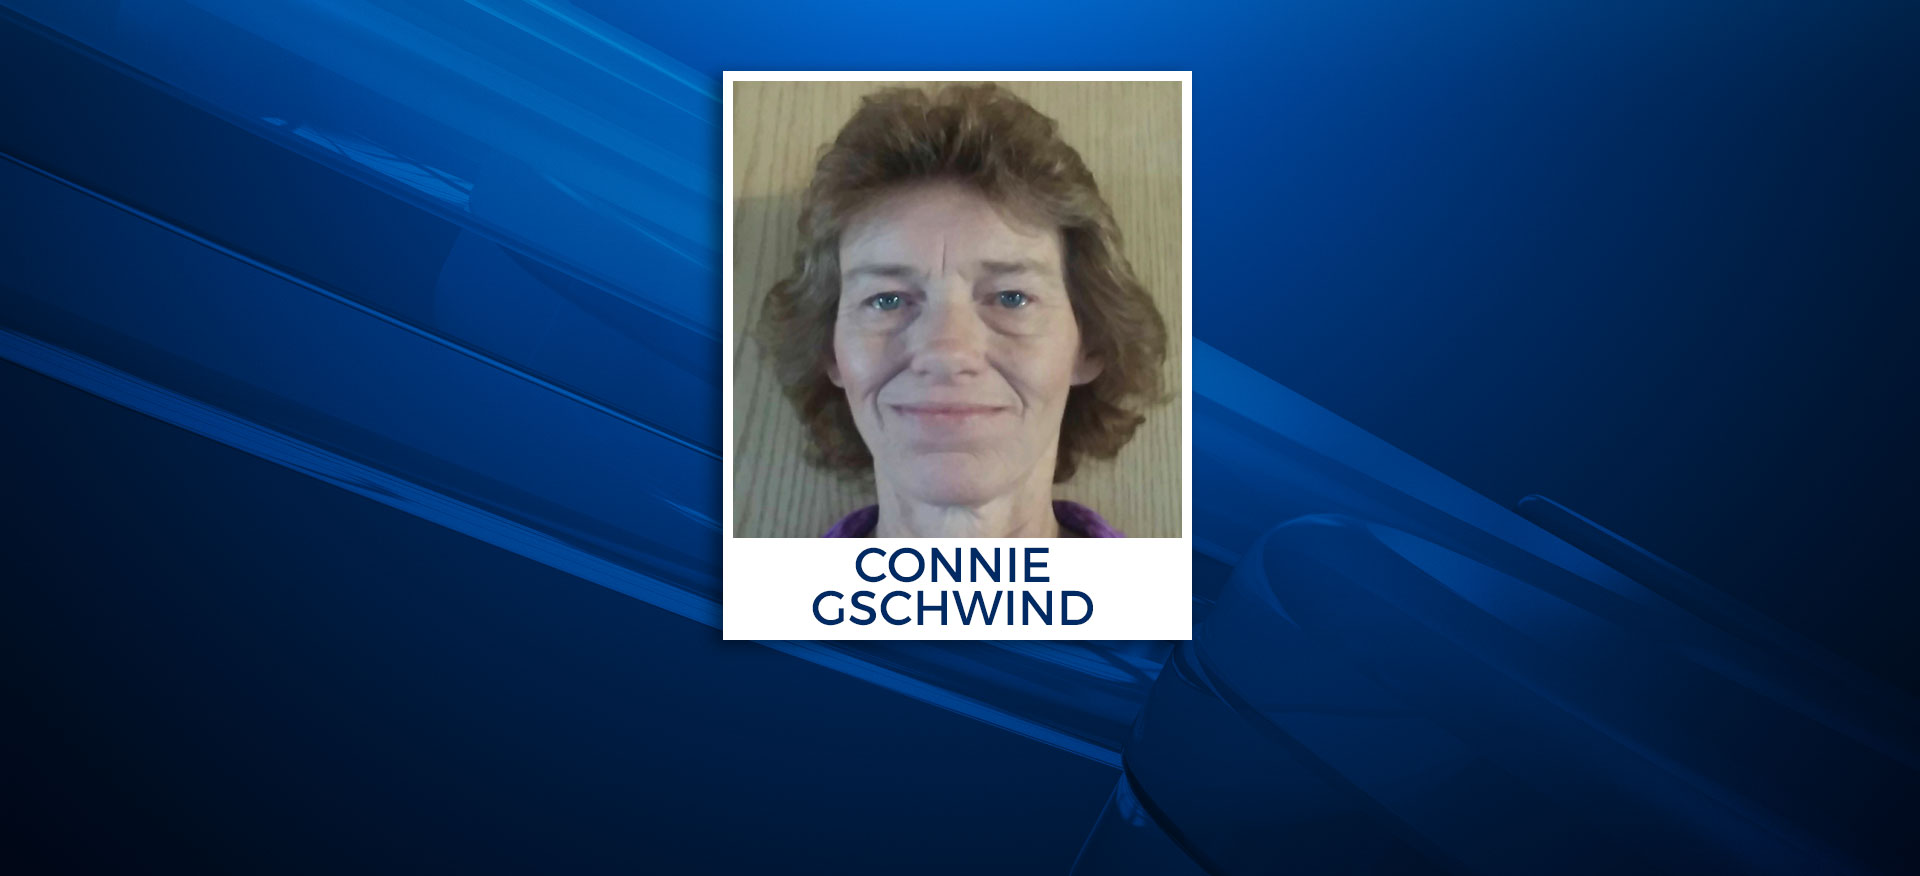 Connie Gschwind missing Moody County woman